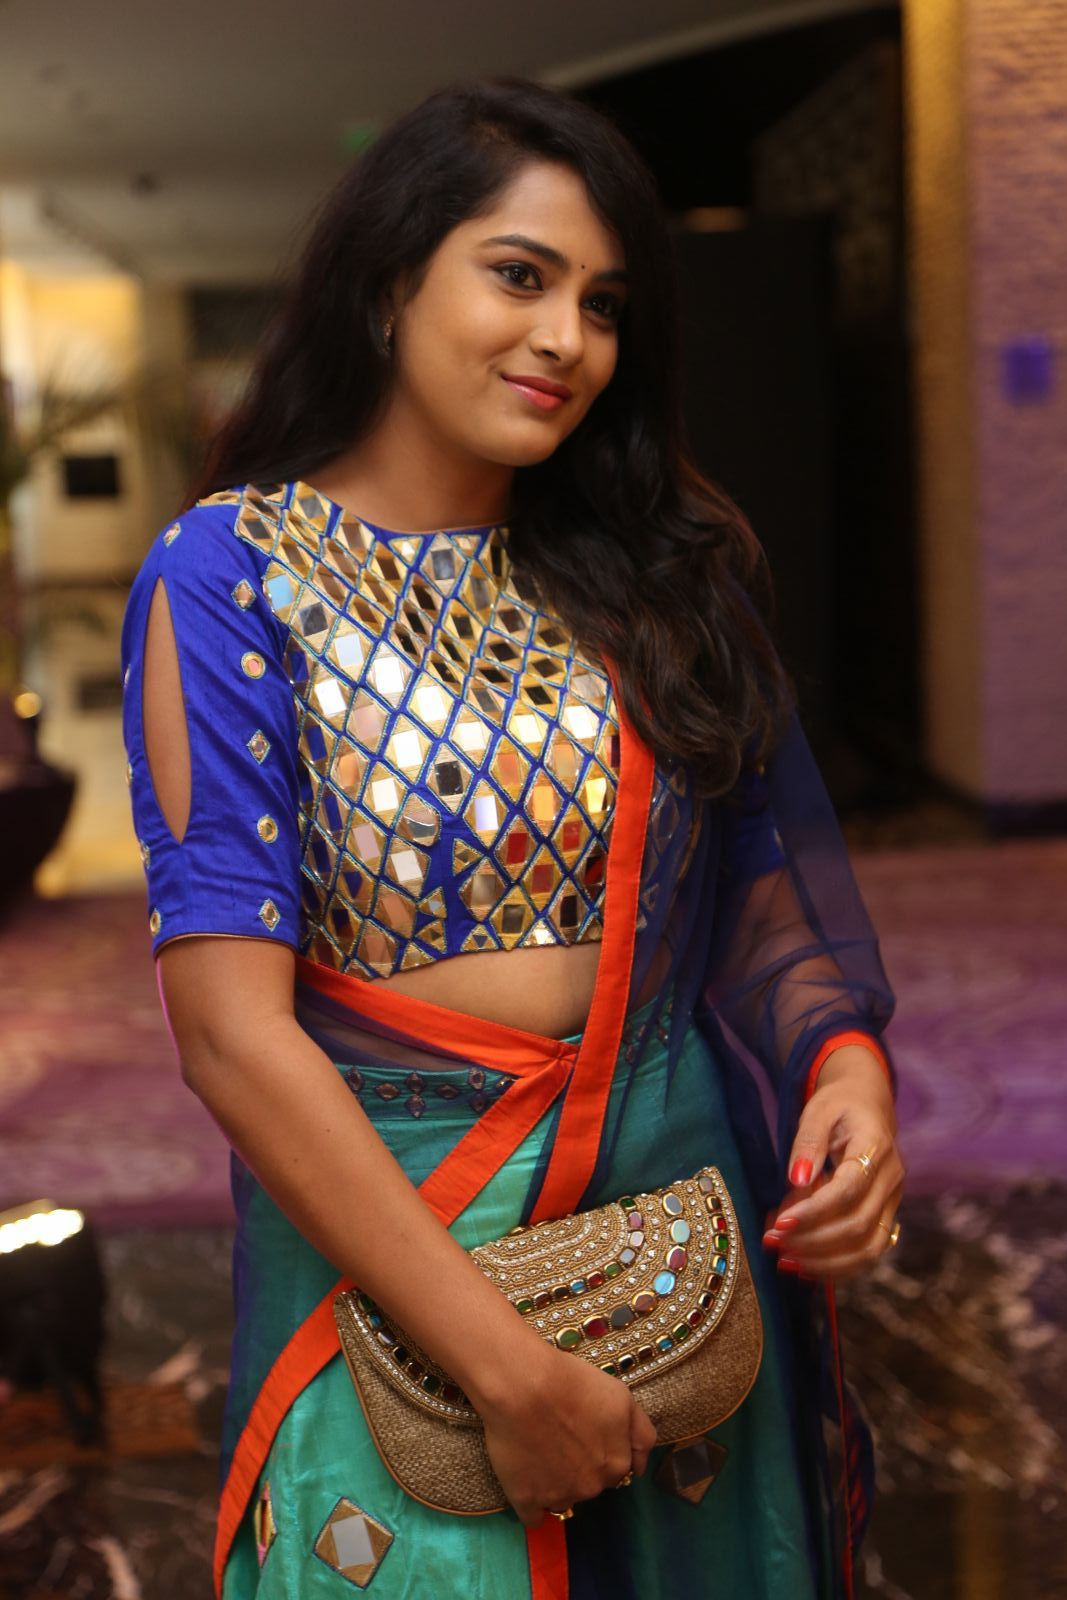 himaza Brand New Photo Stills of Tollywood Actress Himaza | South Actresses Himaza 69